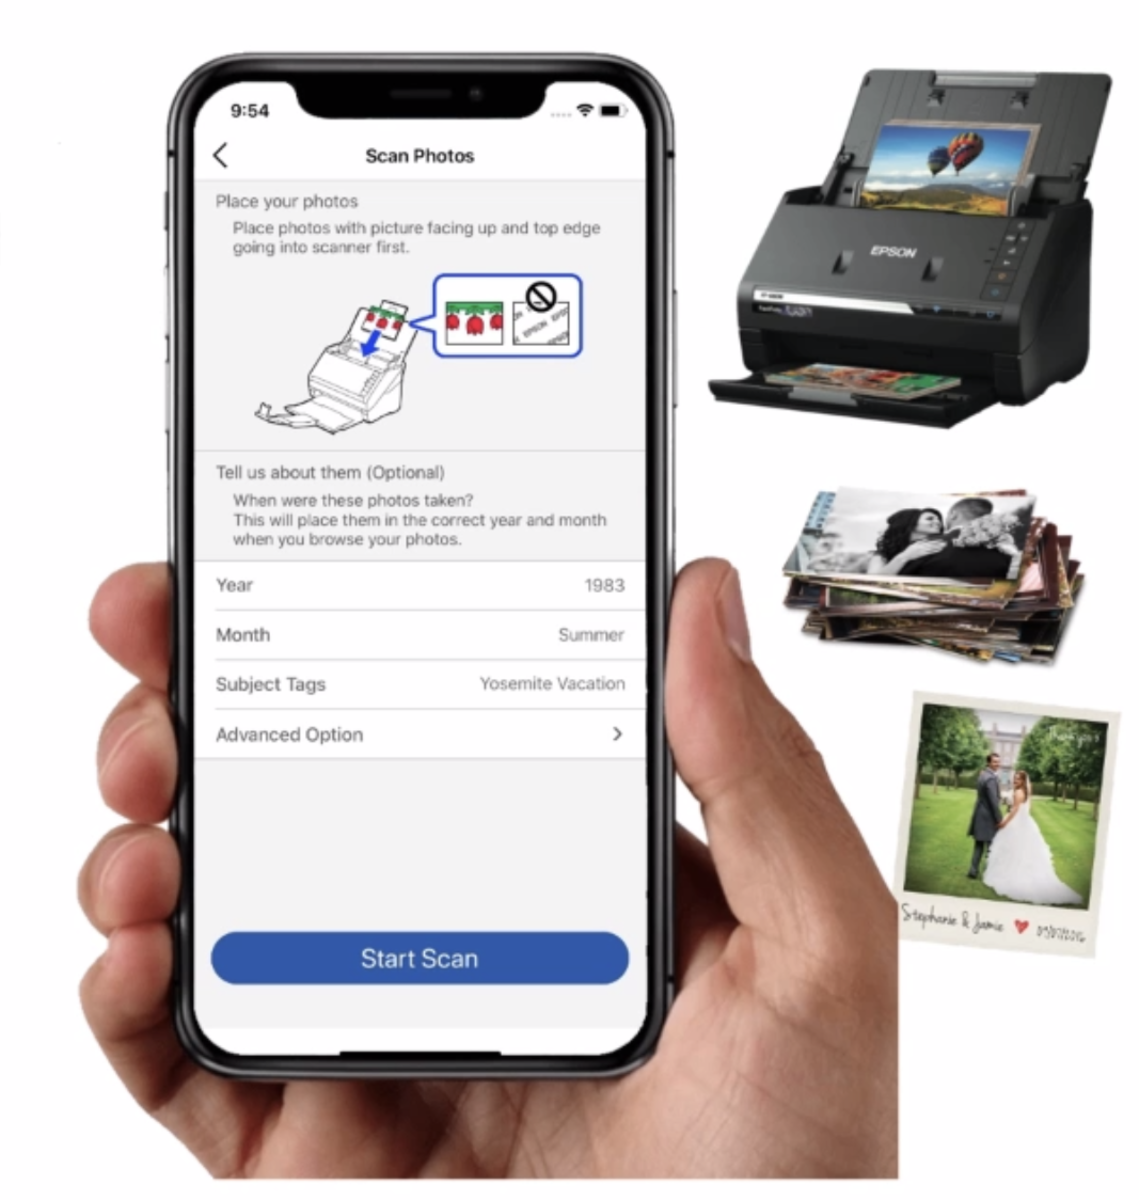 Sharing Scanned Photos Just Got Easier